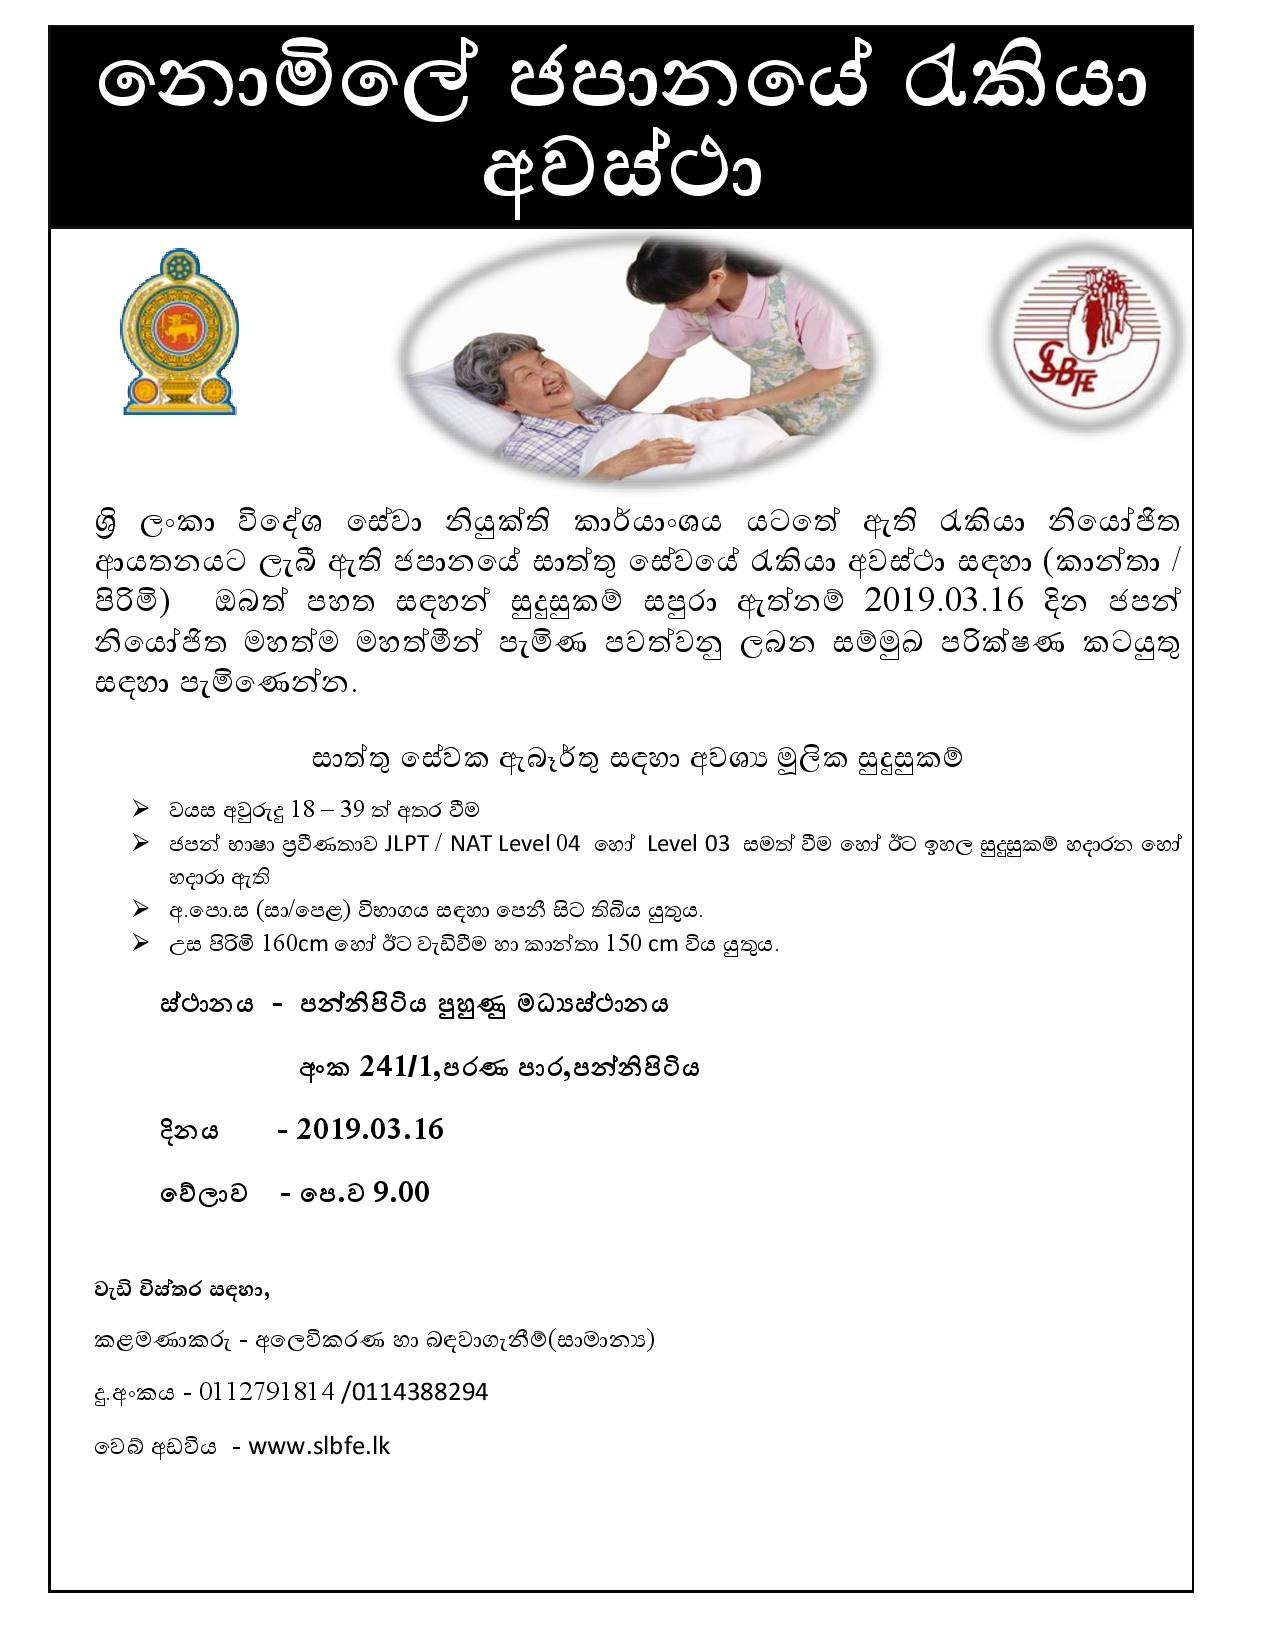 Saththu Sevika Jobs (Japan) - Sri Lanka Foreign Employment